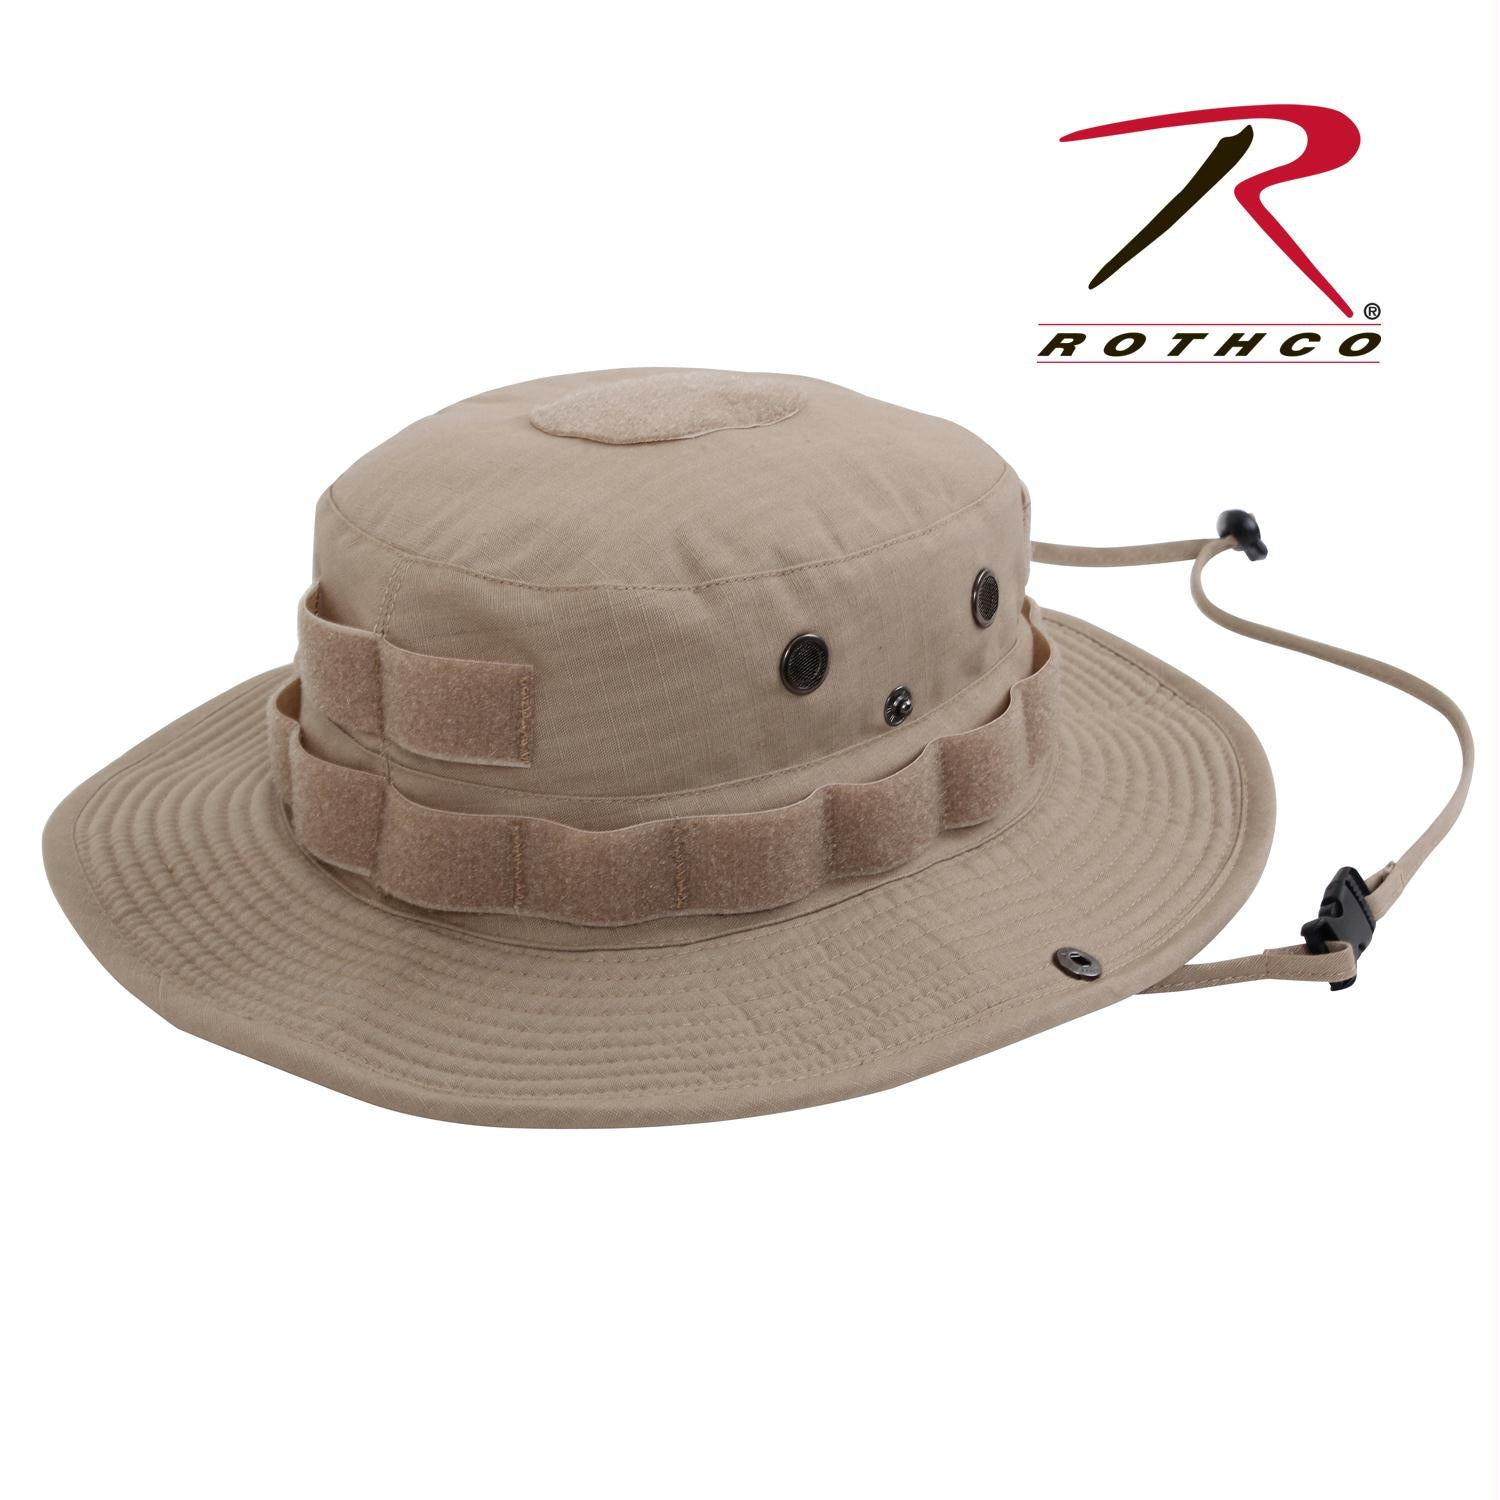 Rothco Tactical Boonie Hat - Tan / 7